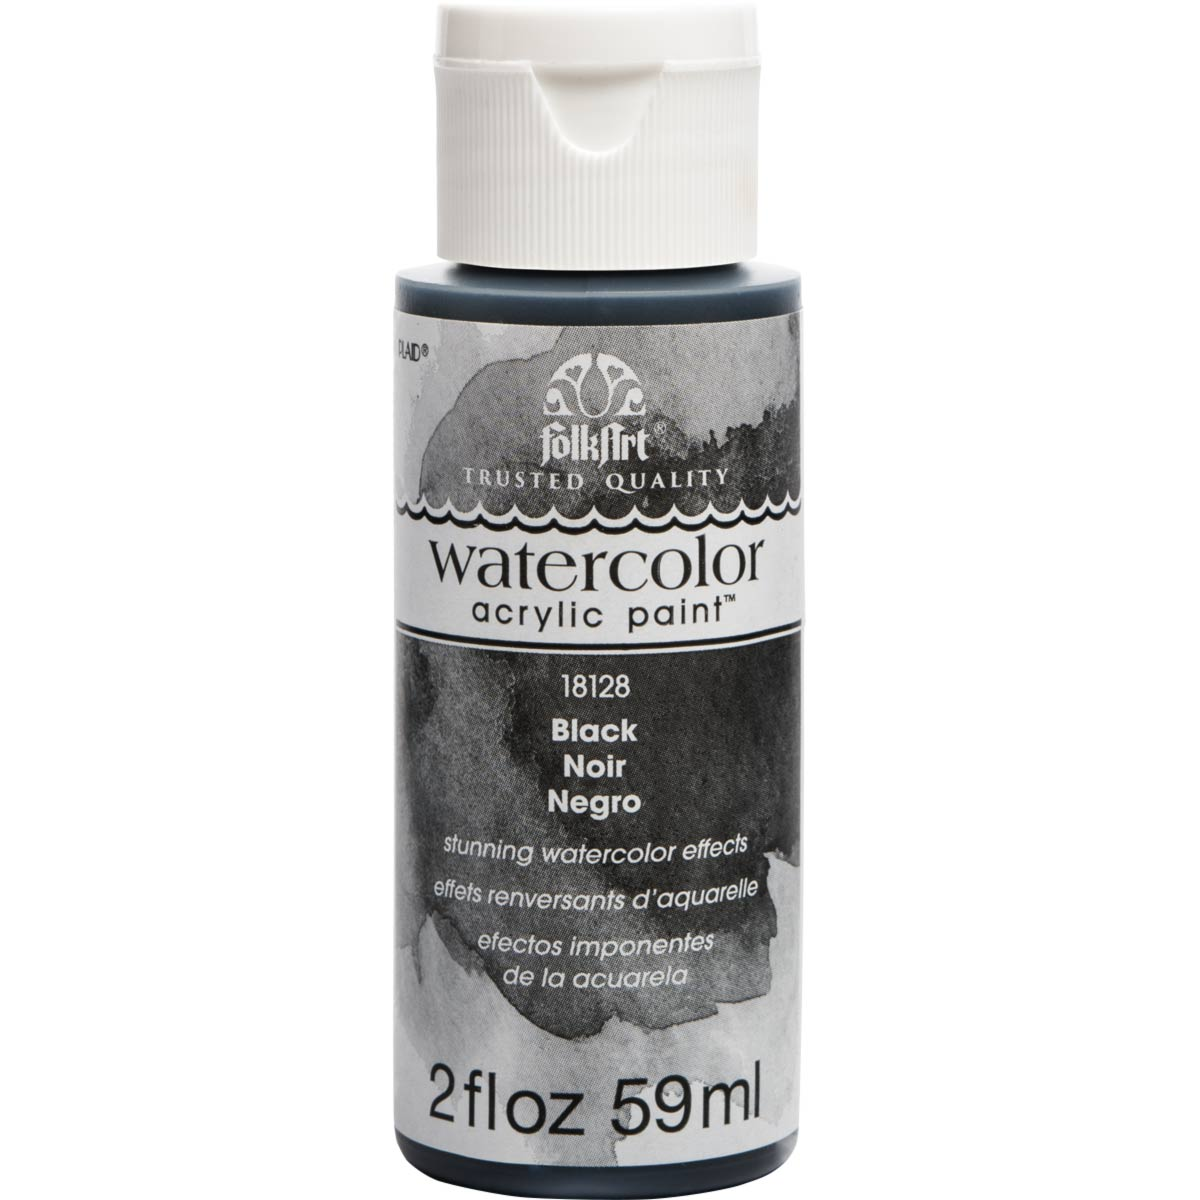 FolkArt ® Watercolor Acrylic Paint™ - Black, 2 oz. - 18128